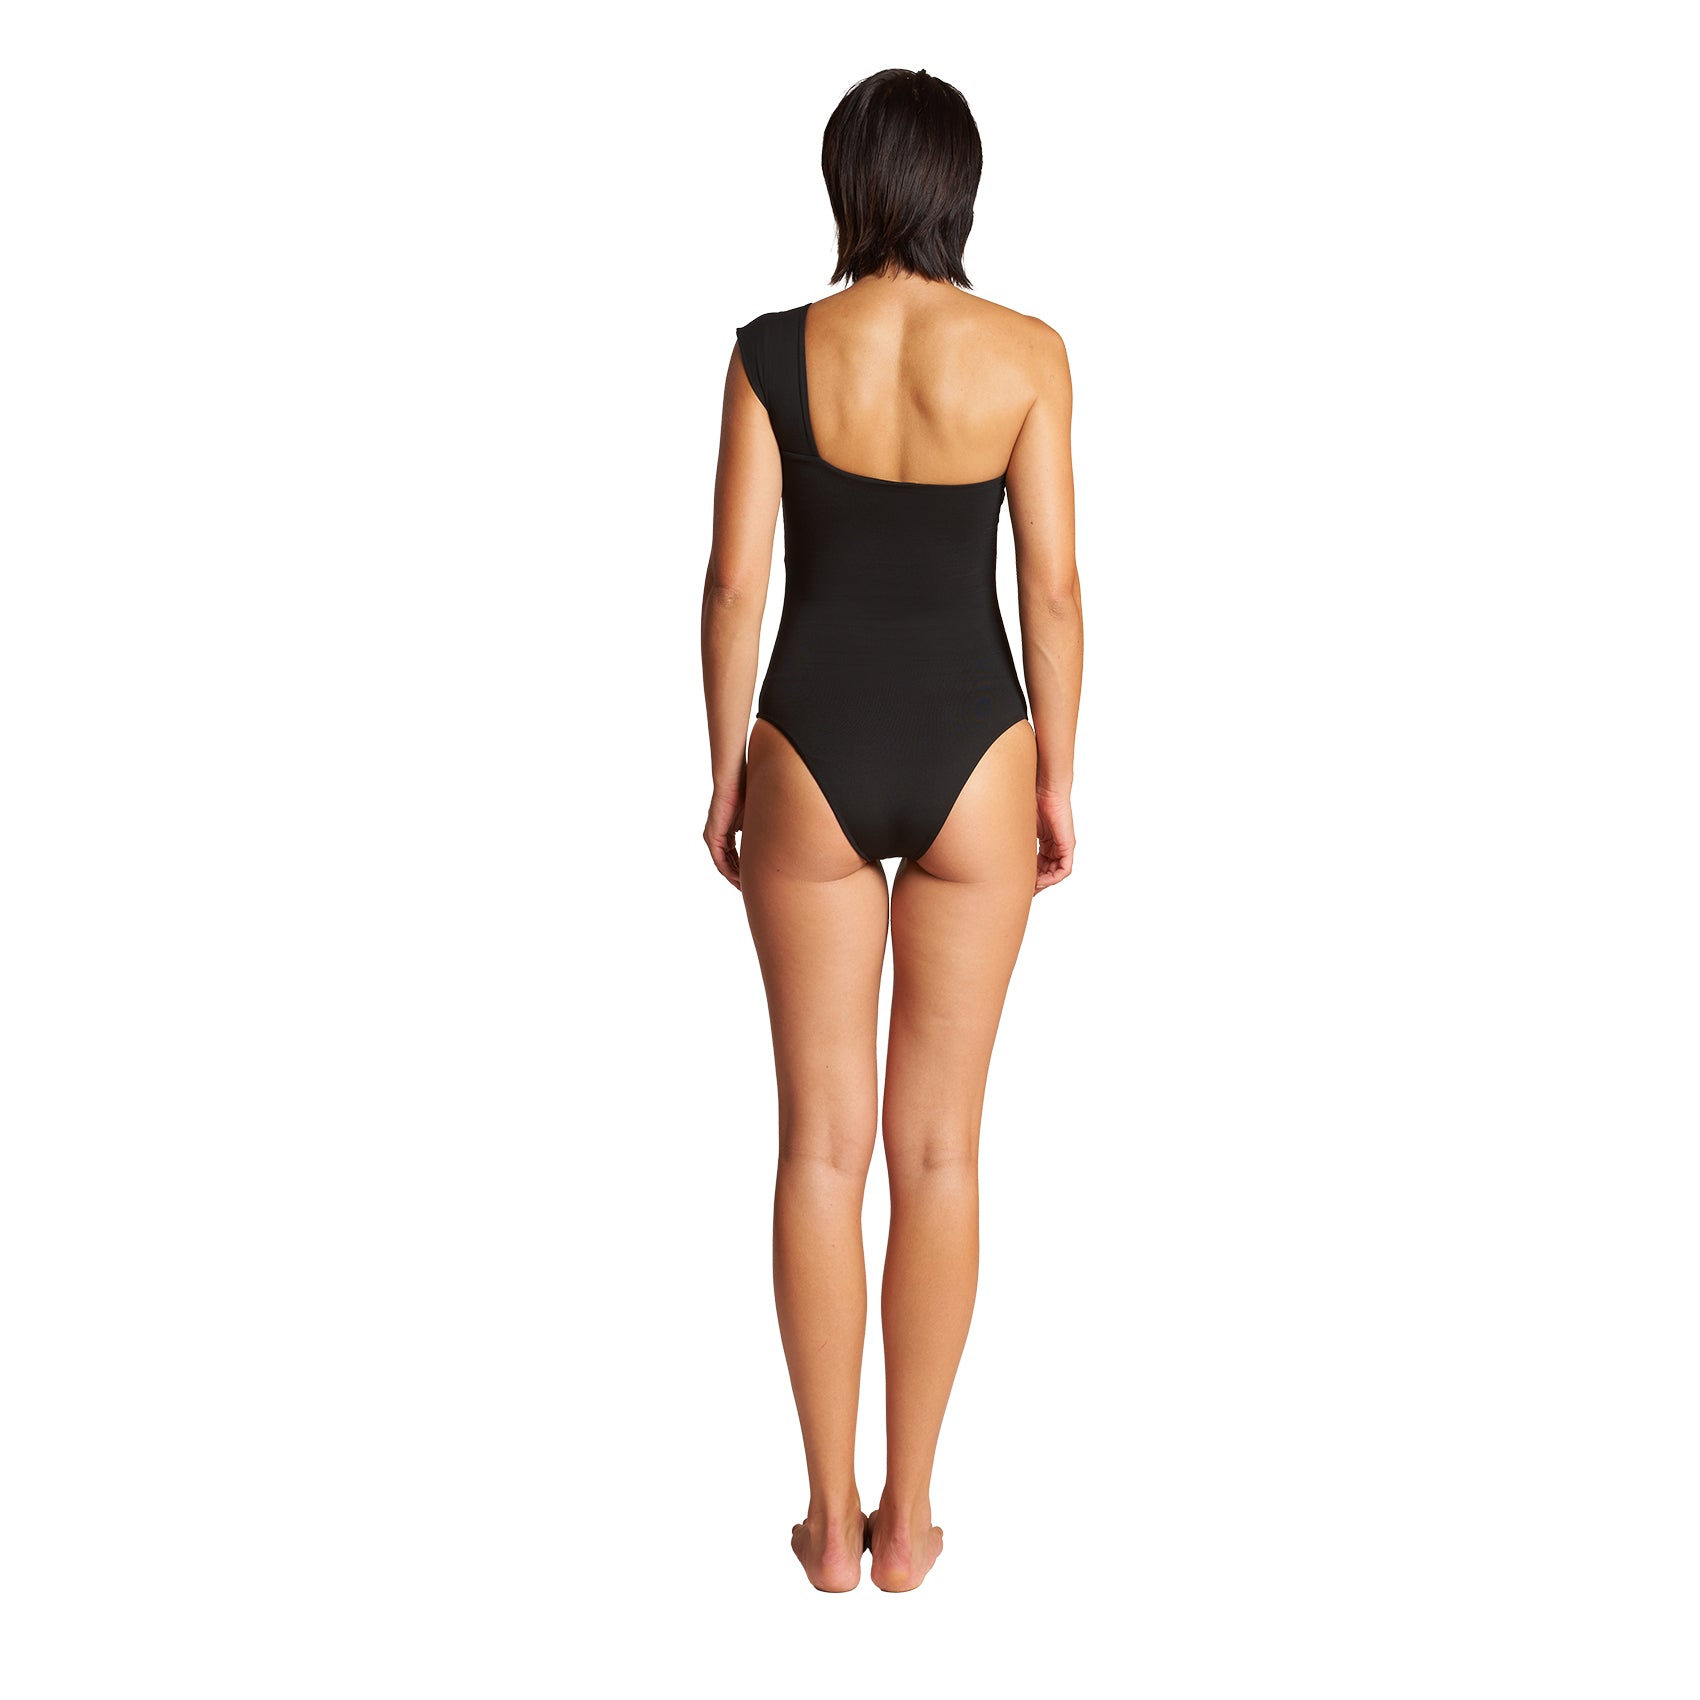 Caliope One Shoulder One Piece in Black